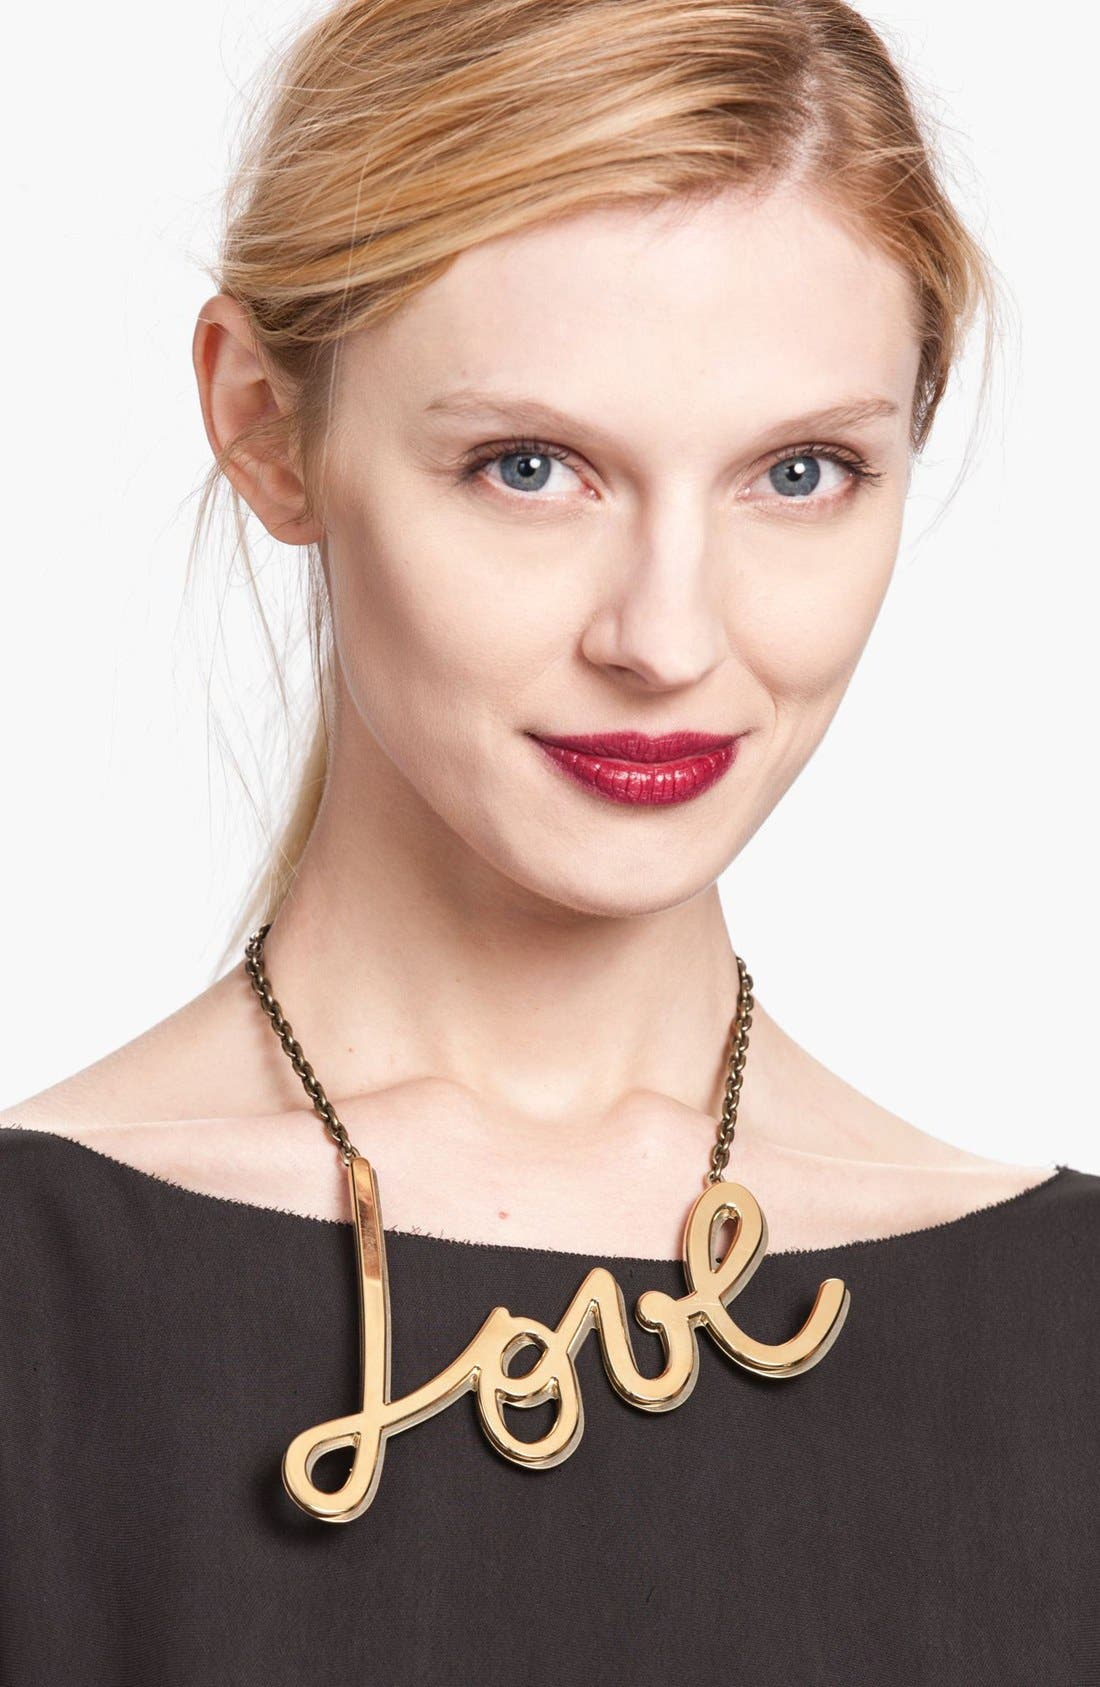 Alternate Image 1 Selected - Lanvin 'Love' Chain Necklace